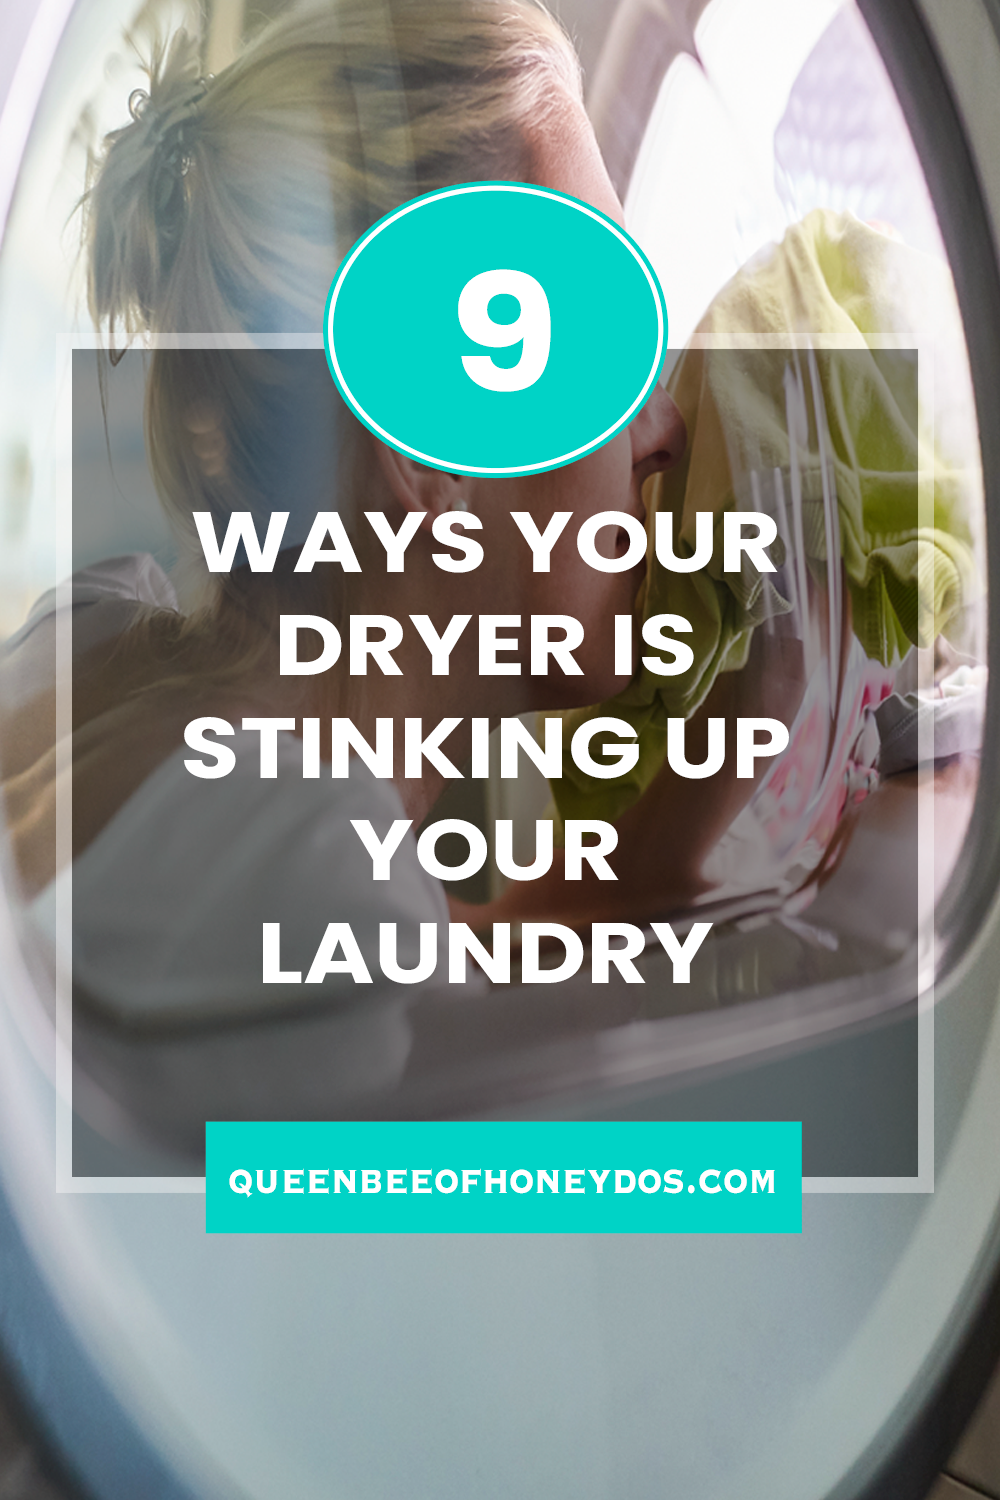 How To Get Bad Smell Out Of Clothes Dryer